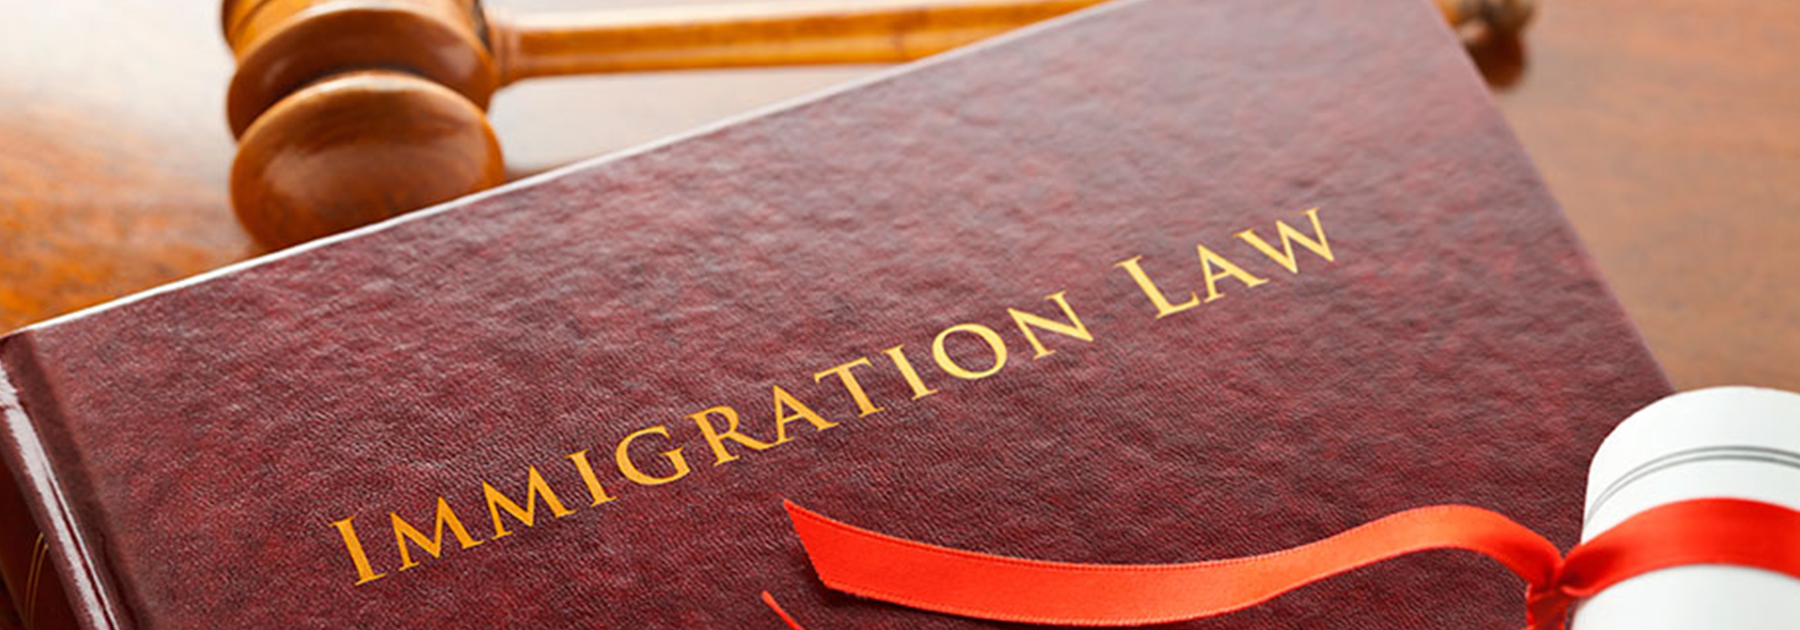 Rights One Lawful Permanent Residence Should Follow